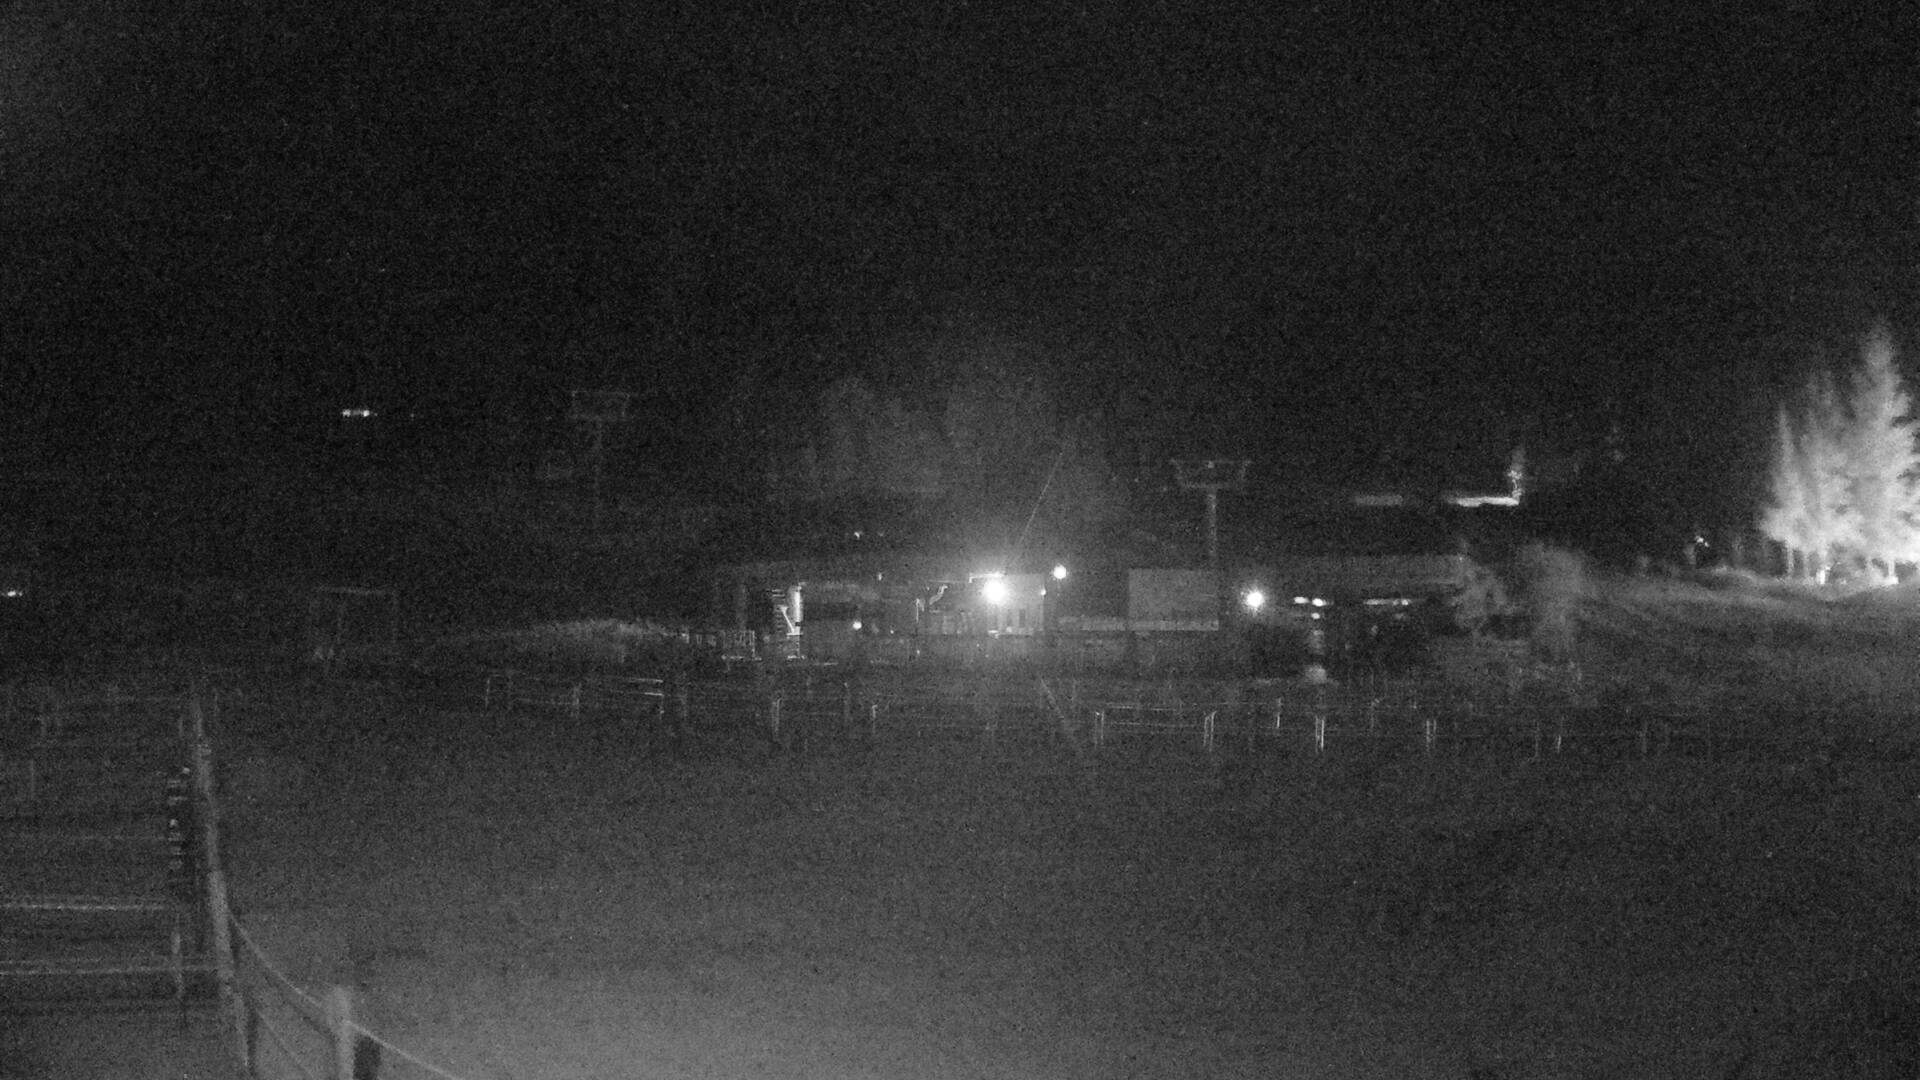 Webcam de la Estación de Esquí de Jackson Hole